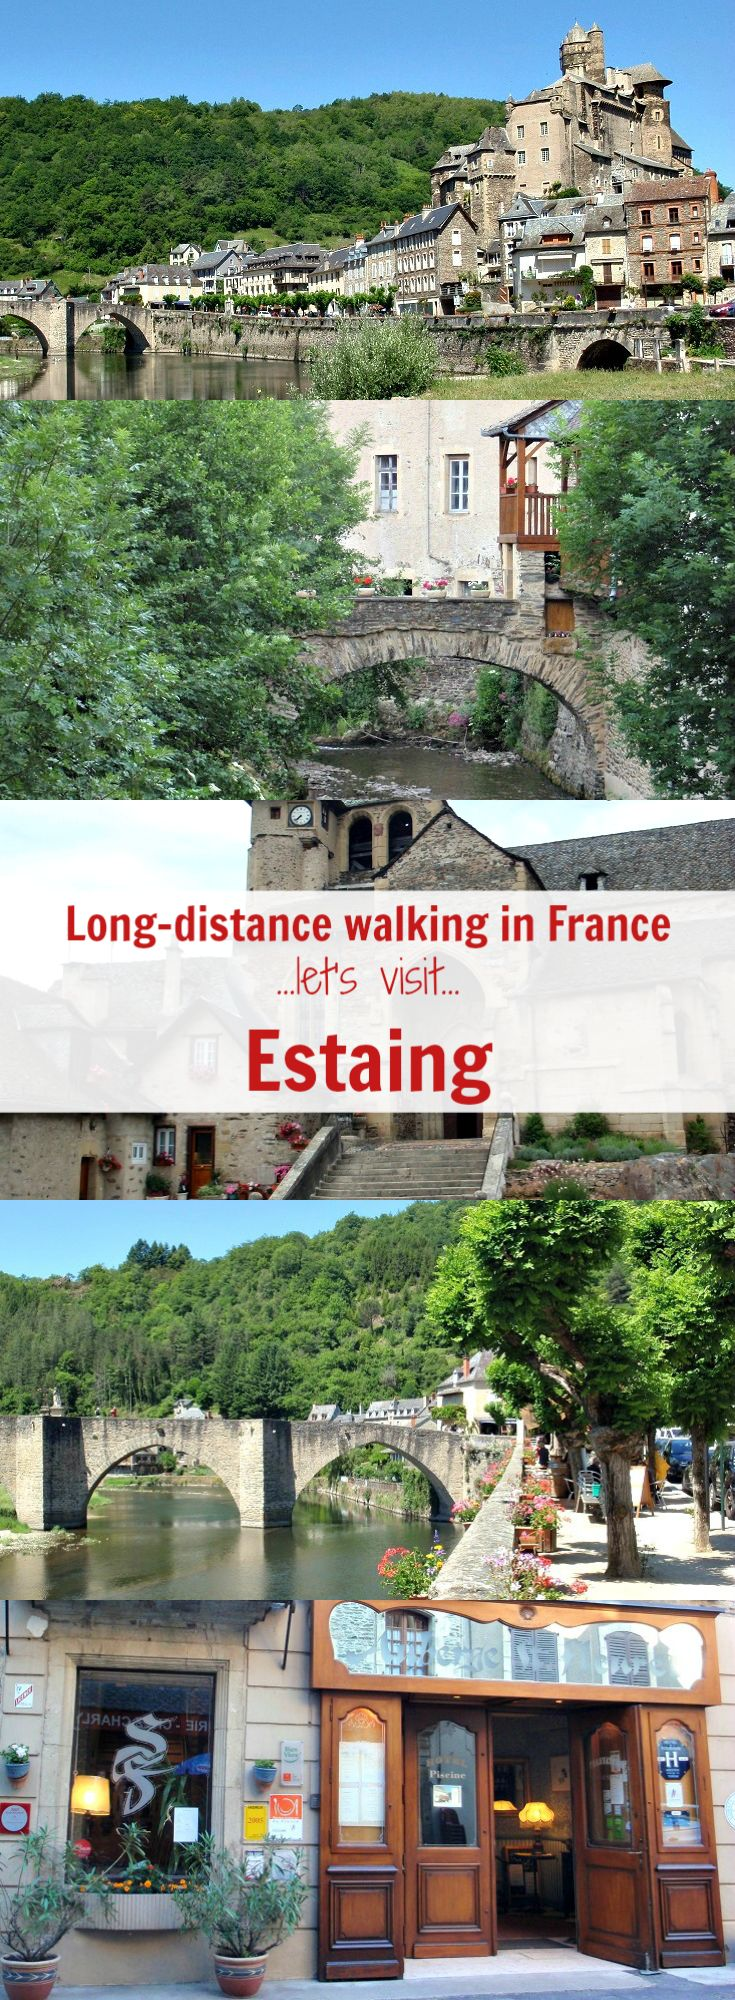 5 unforgettable moments in Estaing, France